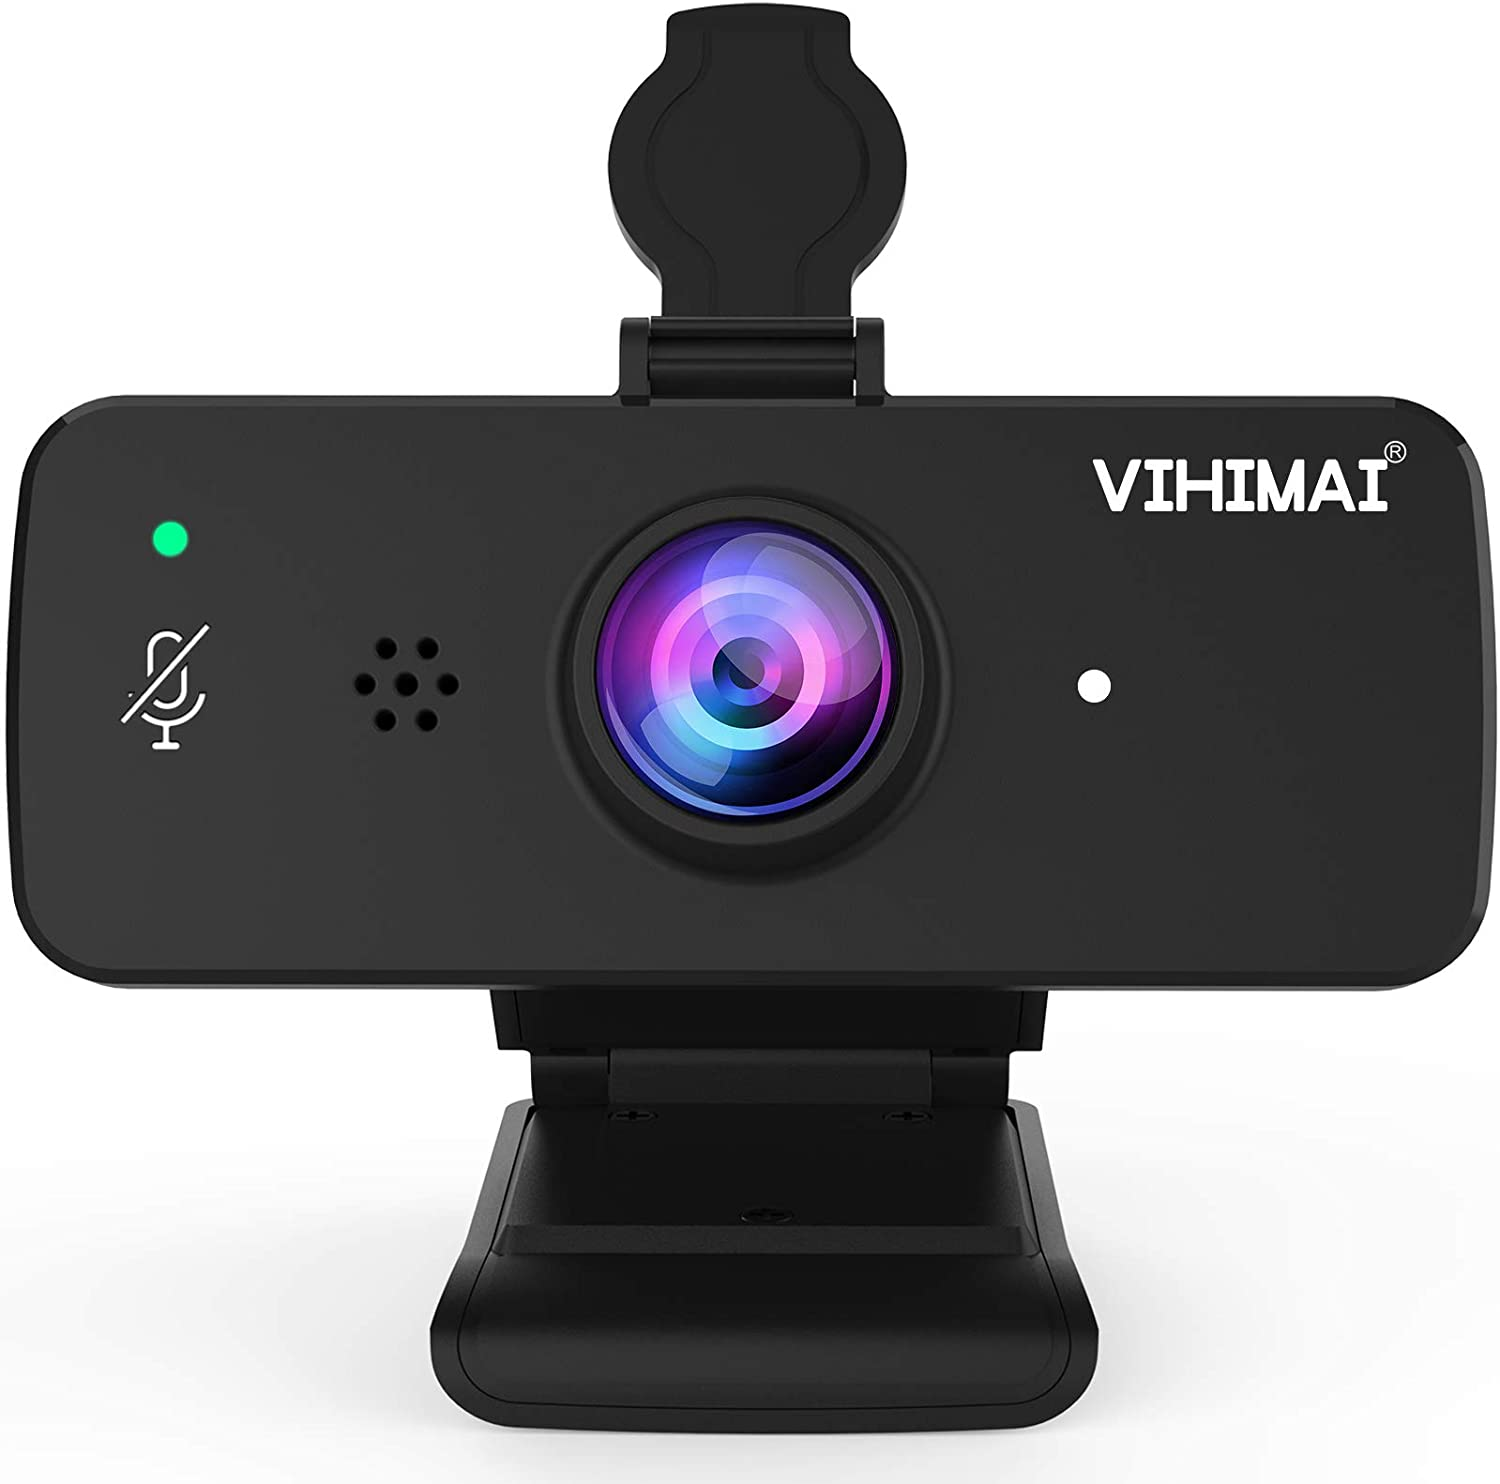 Webcam HD 1080p with Independent Microphone Mute Control Function and Privacy Cover,Notebook Desktop Video Webcam for Online Class